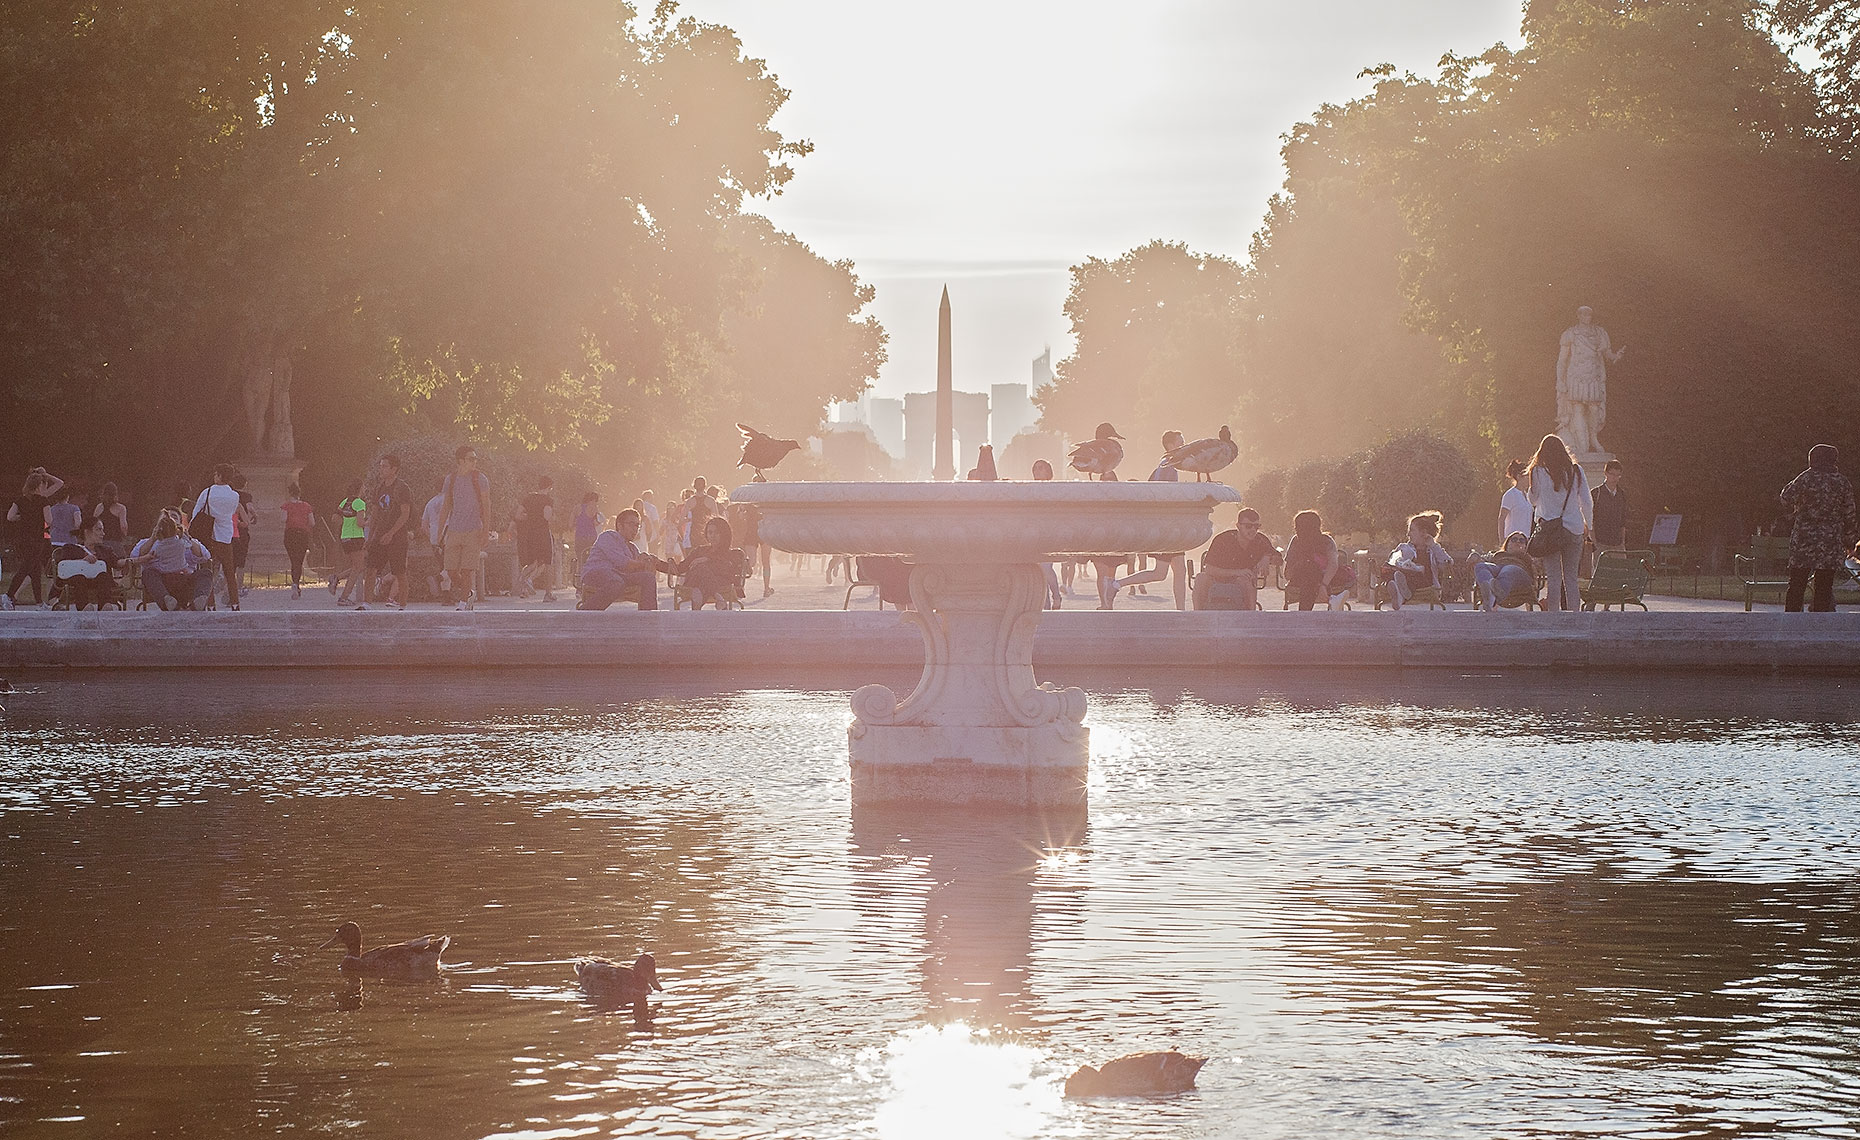 Sun setting over fountain and monuments in Paris, France